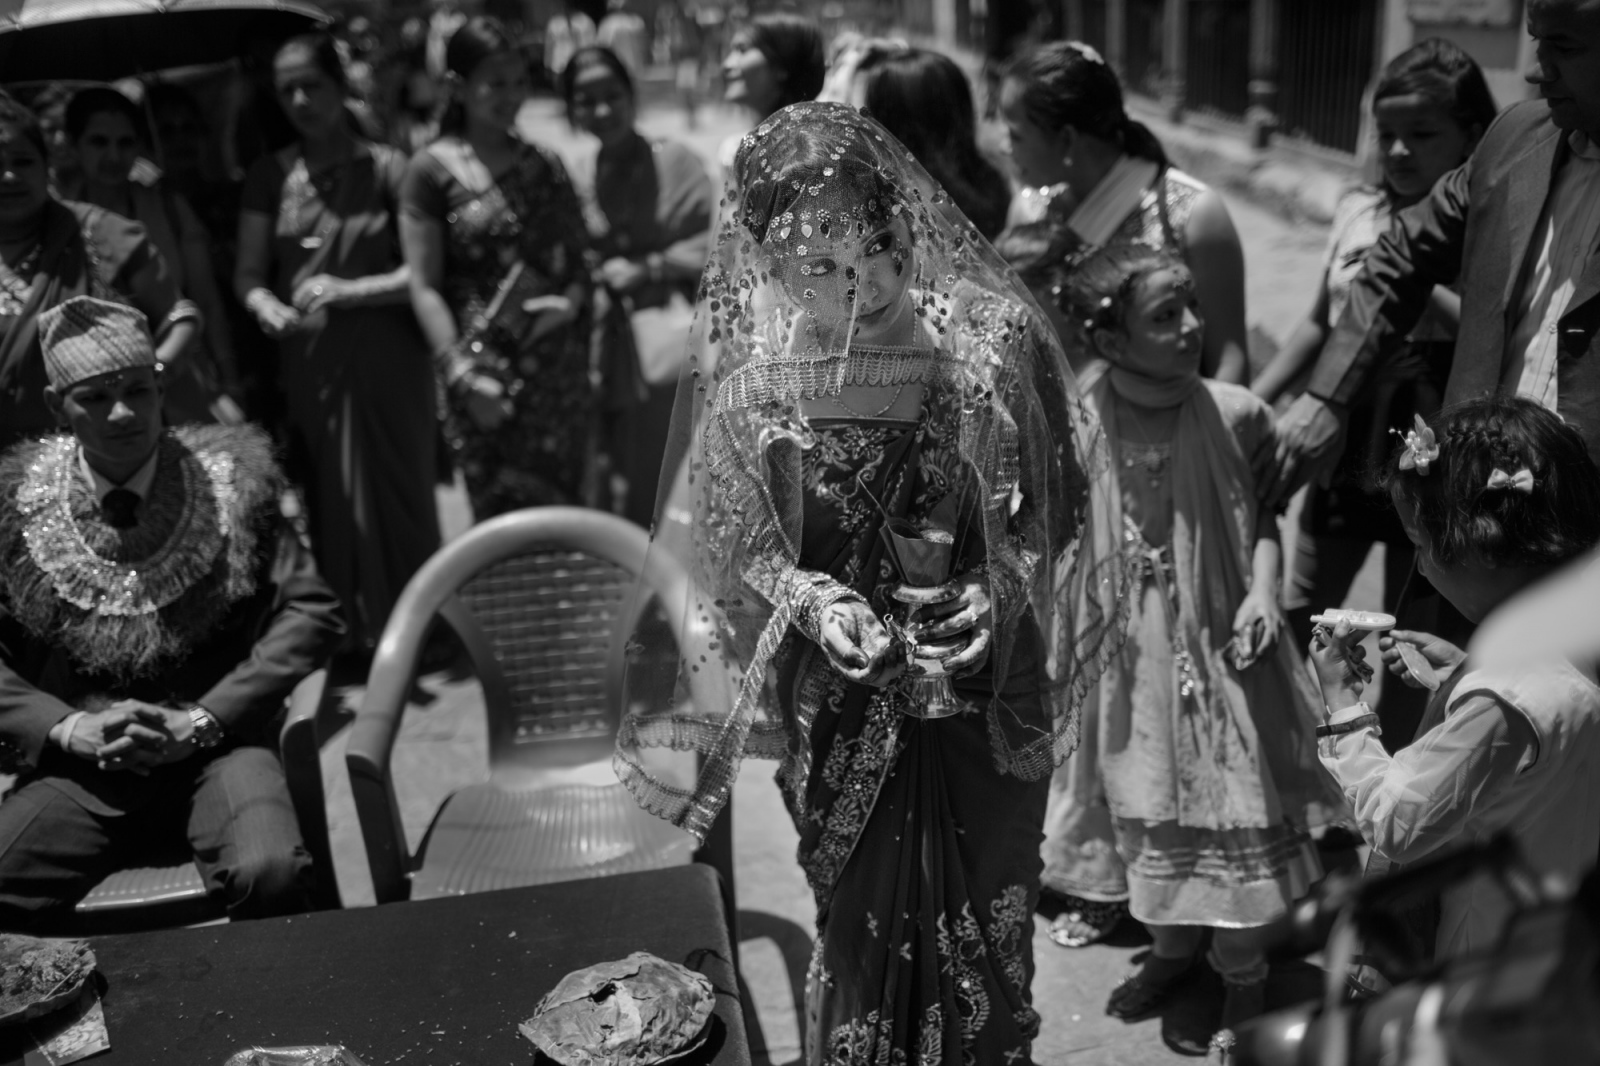 A young woman participates in a marriage ritual at a special temple in Kathmandu for couples marrying without the permission of their families. She walks around her husband (seated), dripping water on the ground as a symbol of asking the gods to protect their marriage.